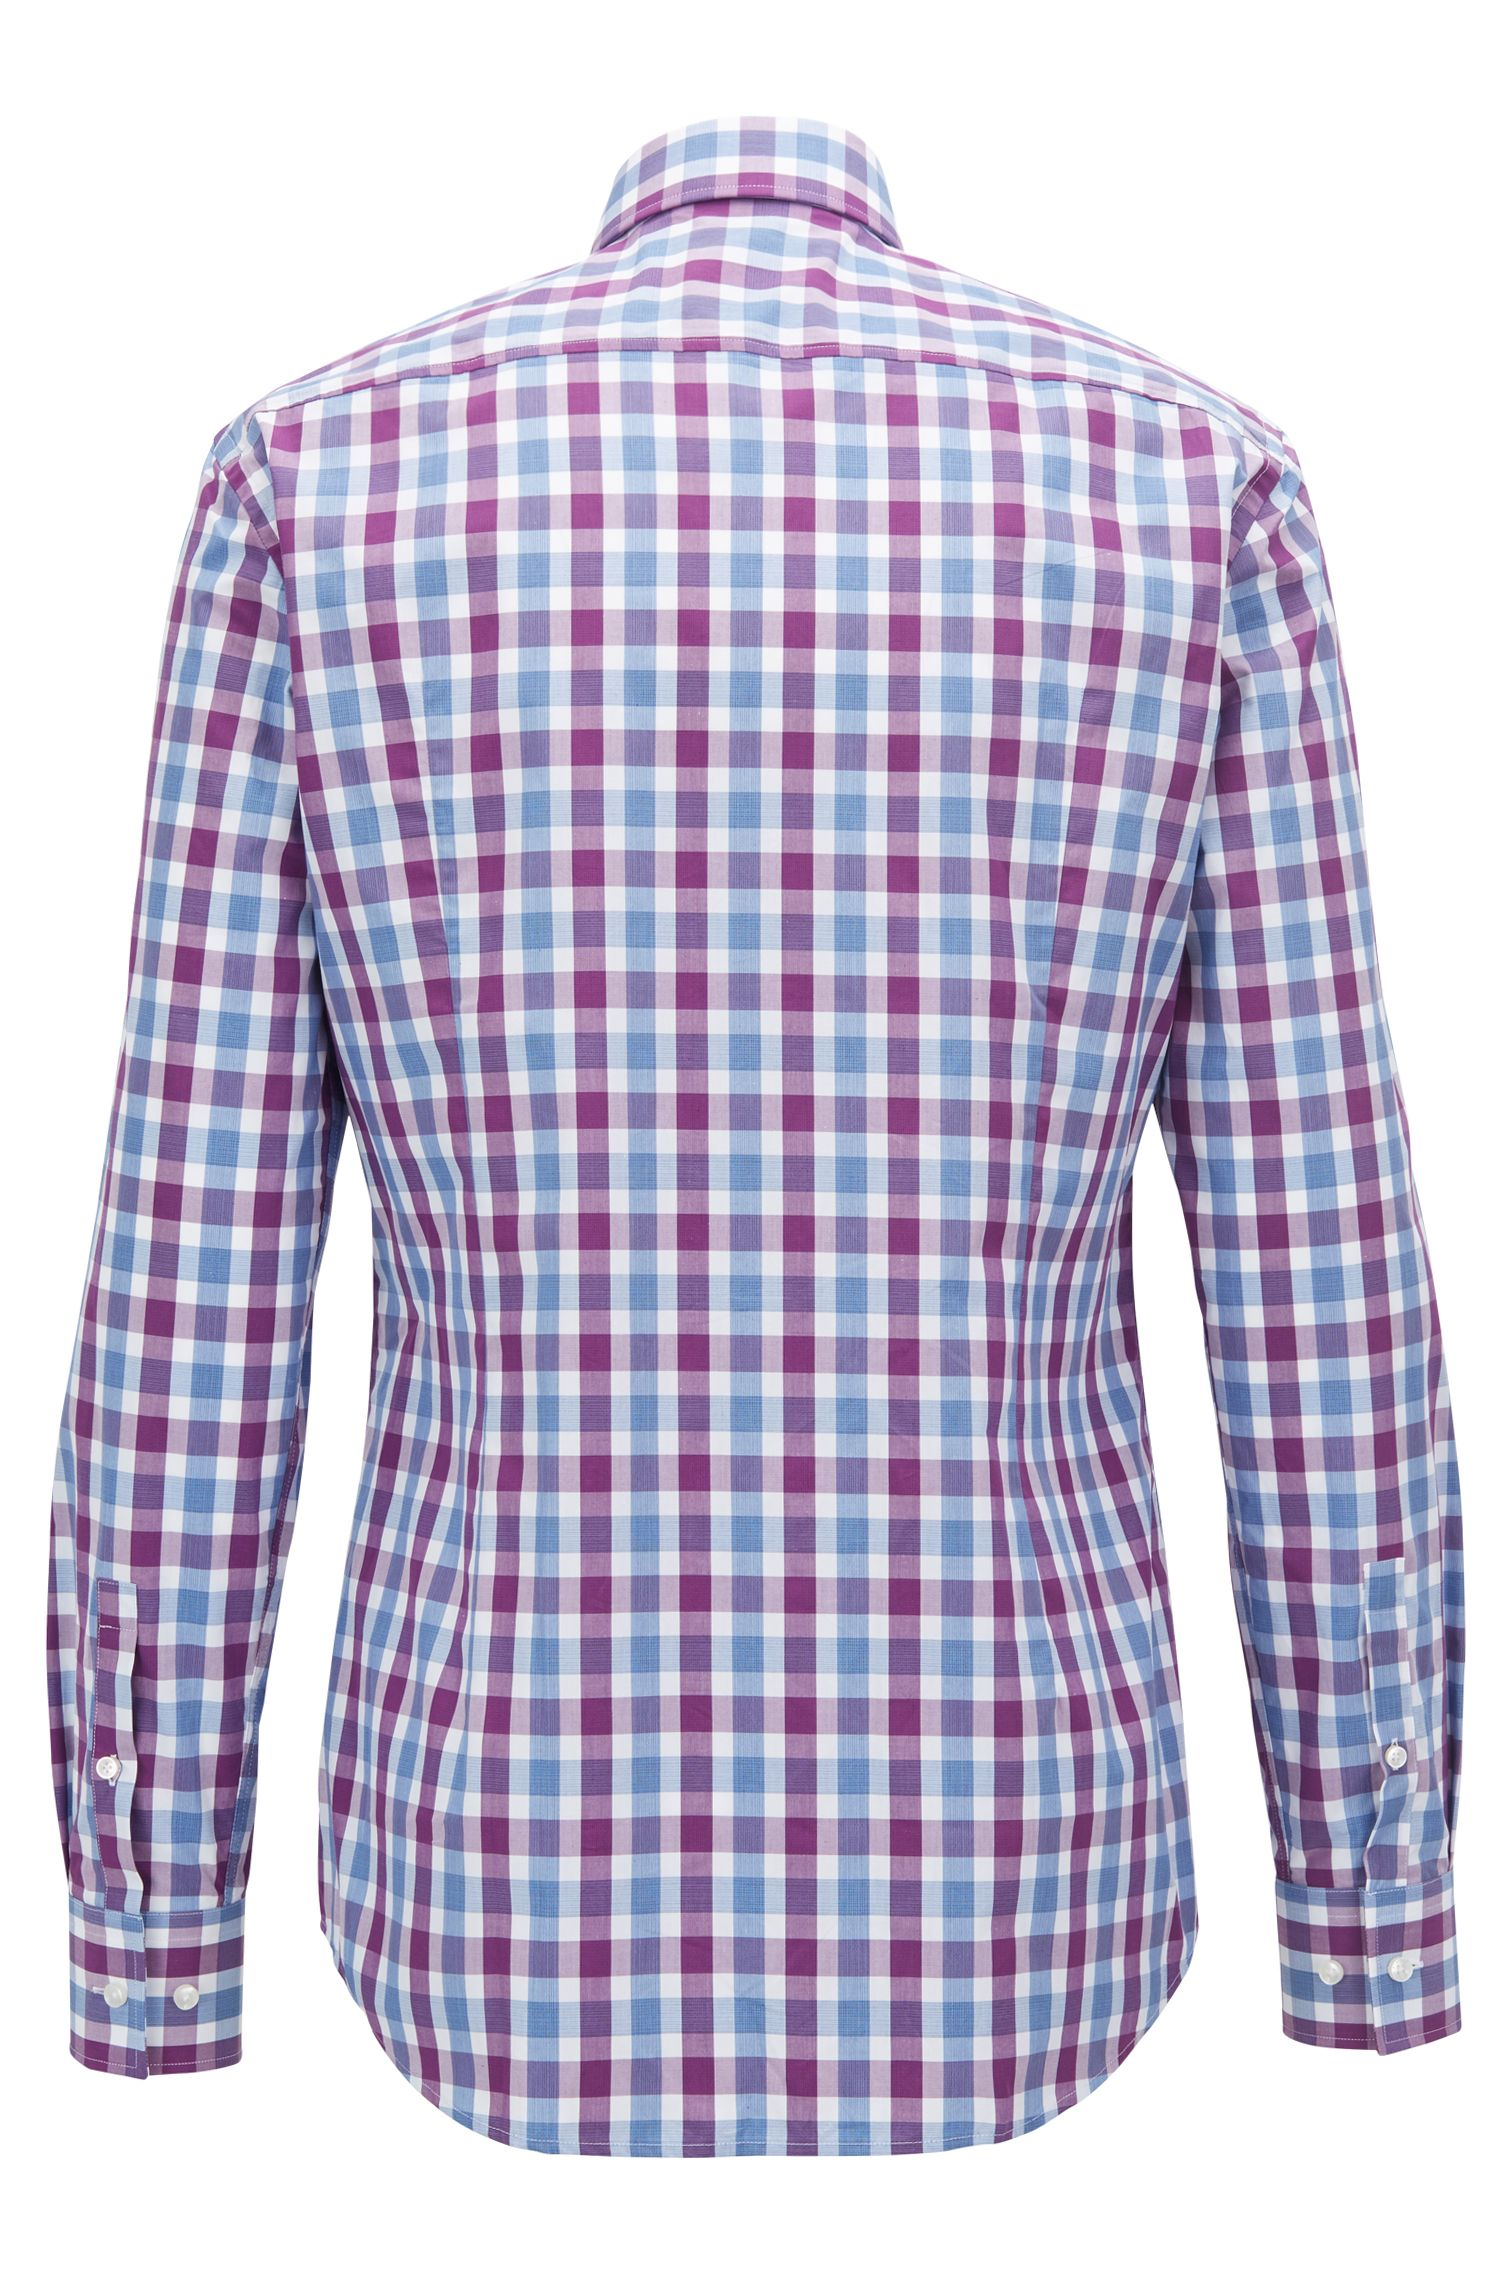 Slim-fit shirt in Vichy-check cotton poplin, Dark pink